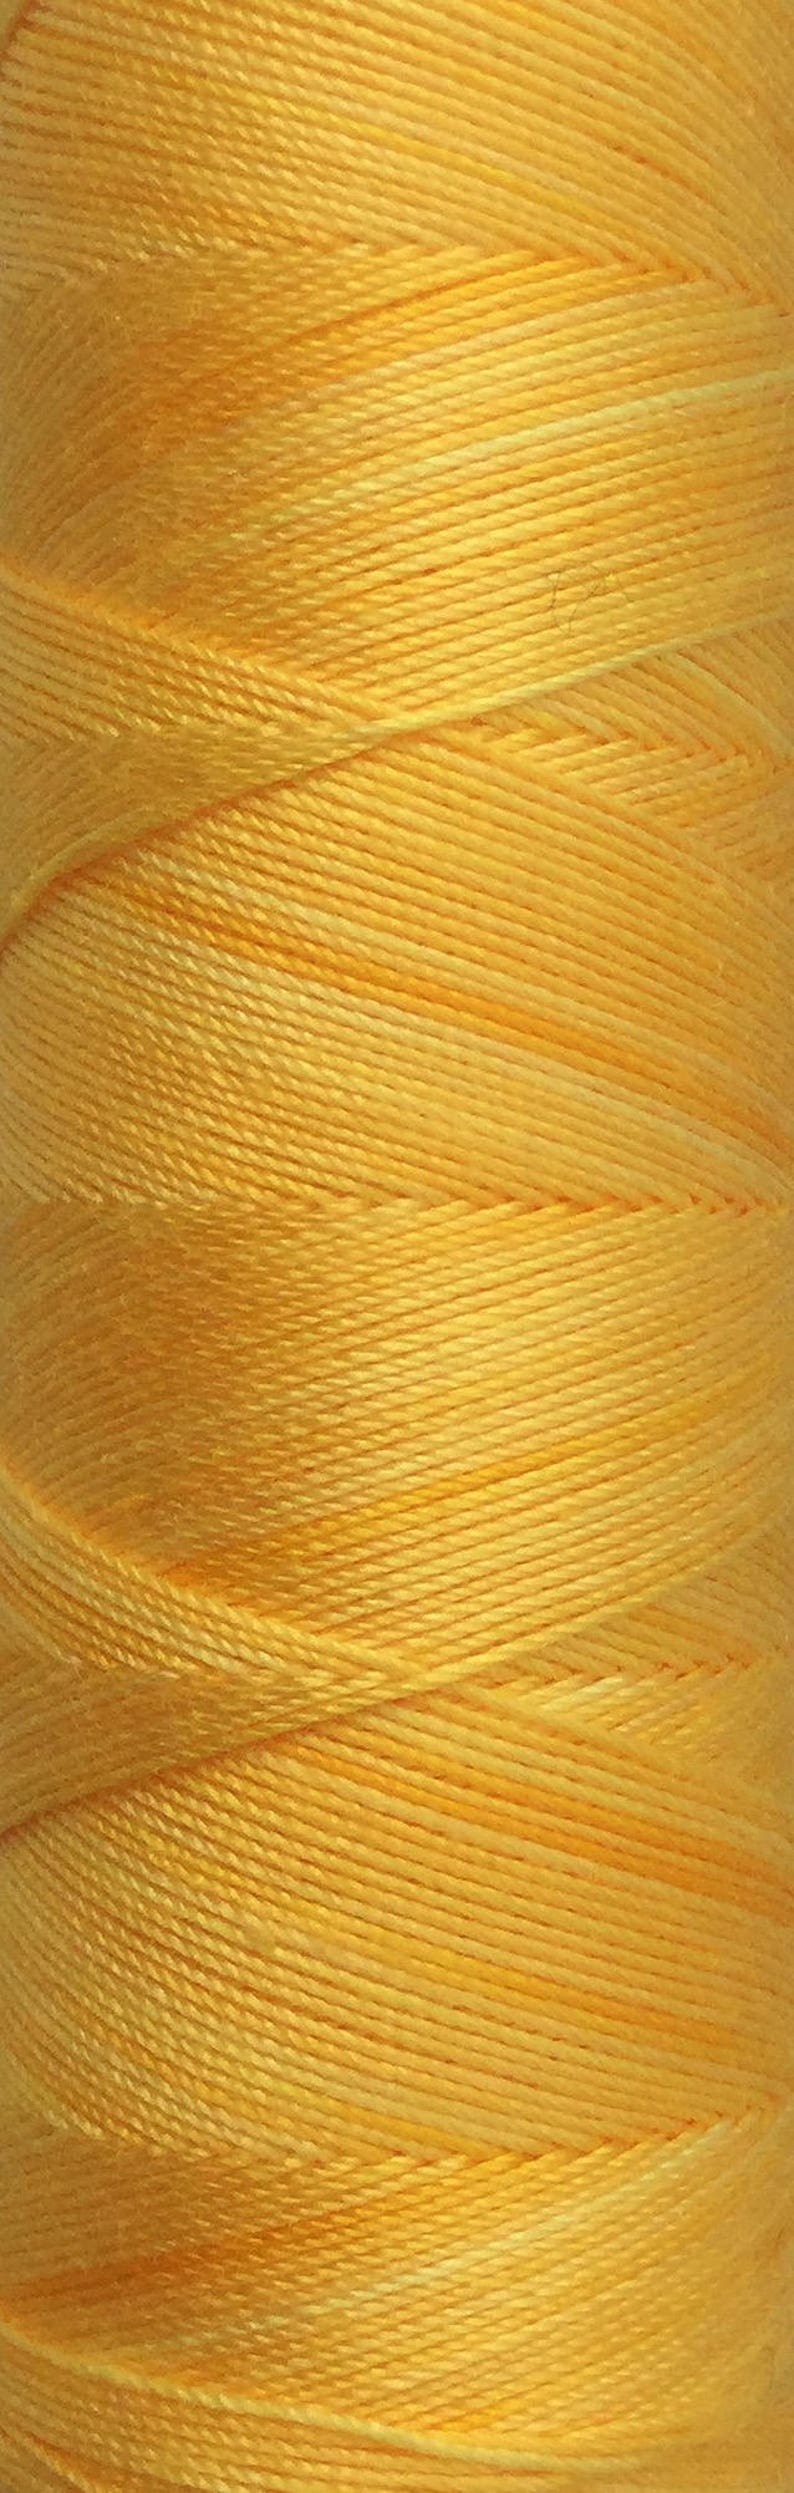 No.51 Daffodil Hand Dyed Cotton Machine Thread Individual image 0